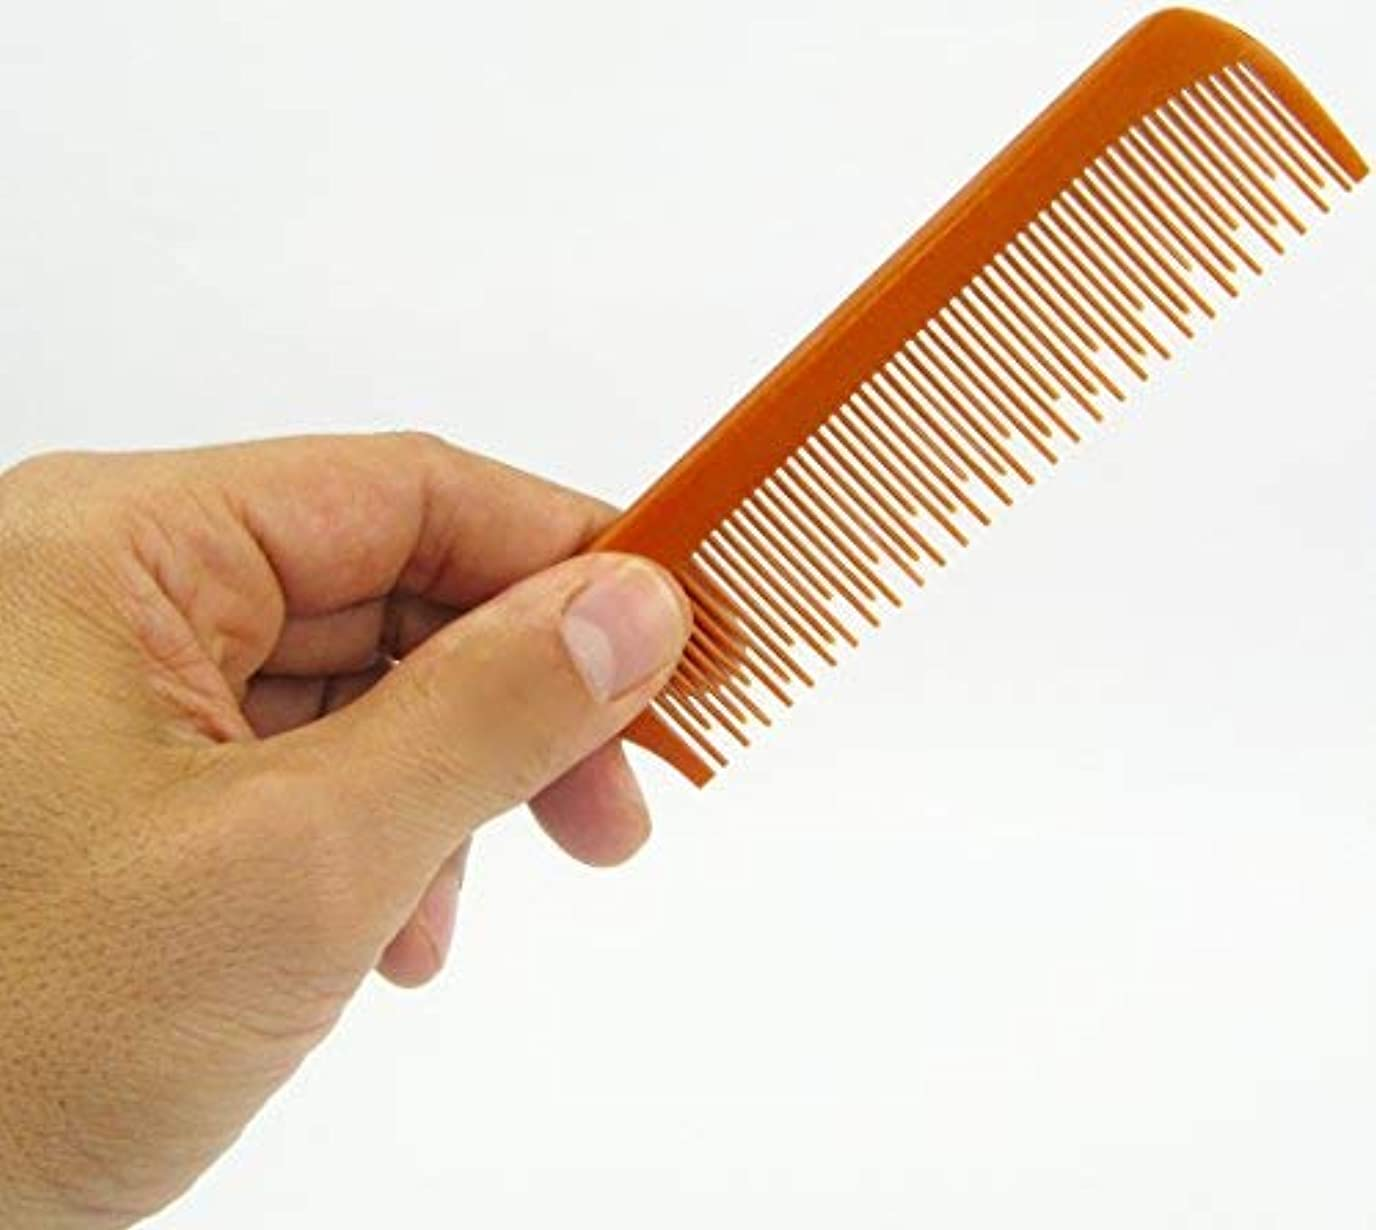 Teasing hairstyling Comb with Tail -Celebrity favorite hair secret, styling tool, no static. no frizz, heat resistant...